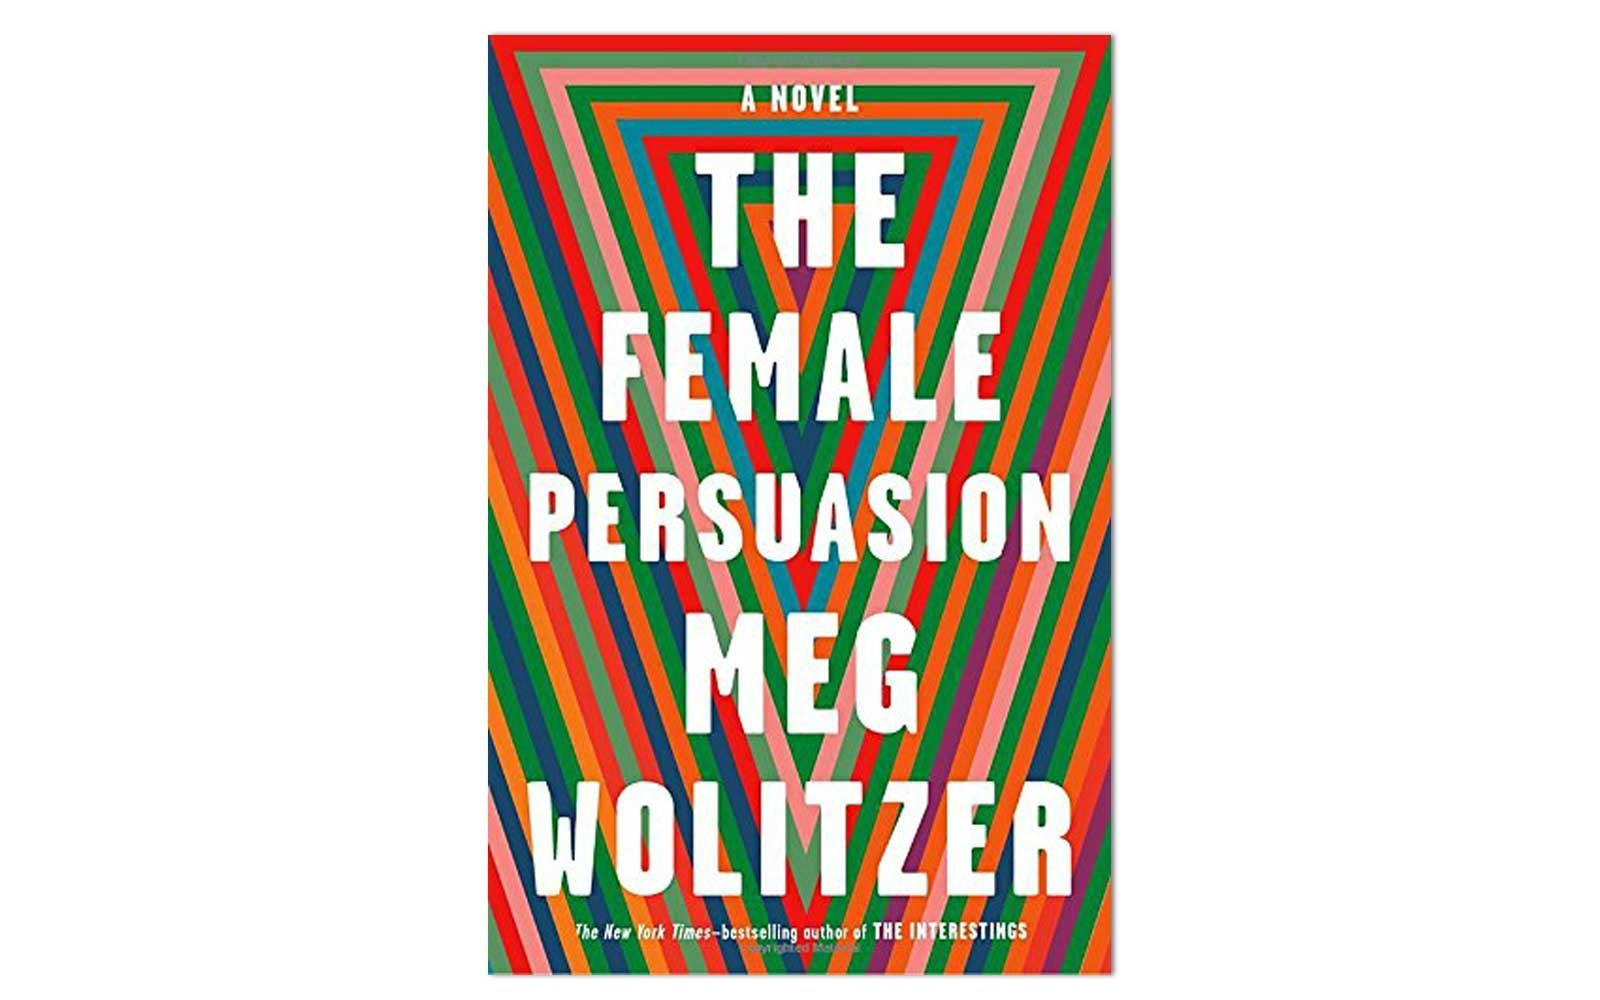 The Female Persuasion by Meg Wolitzer (Riverhead Books)